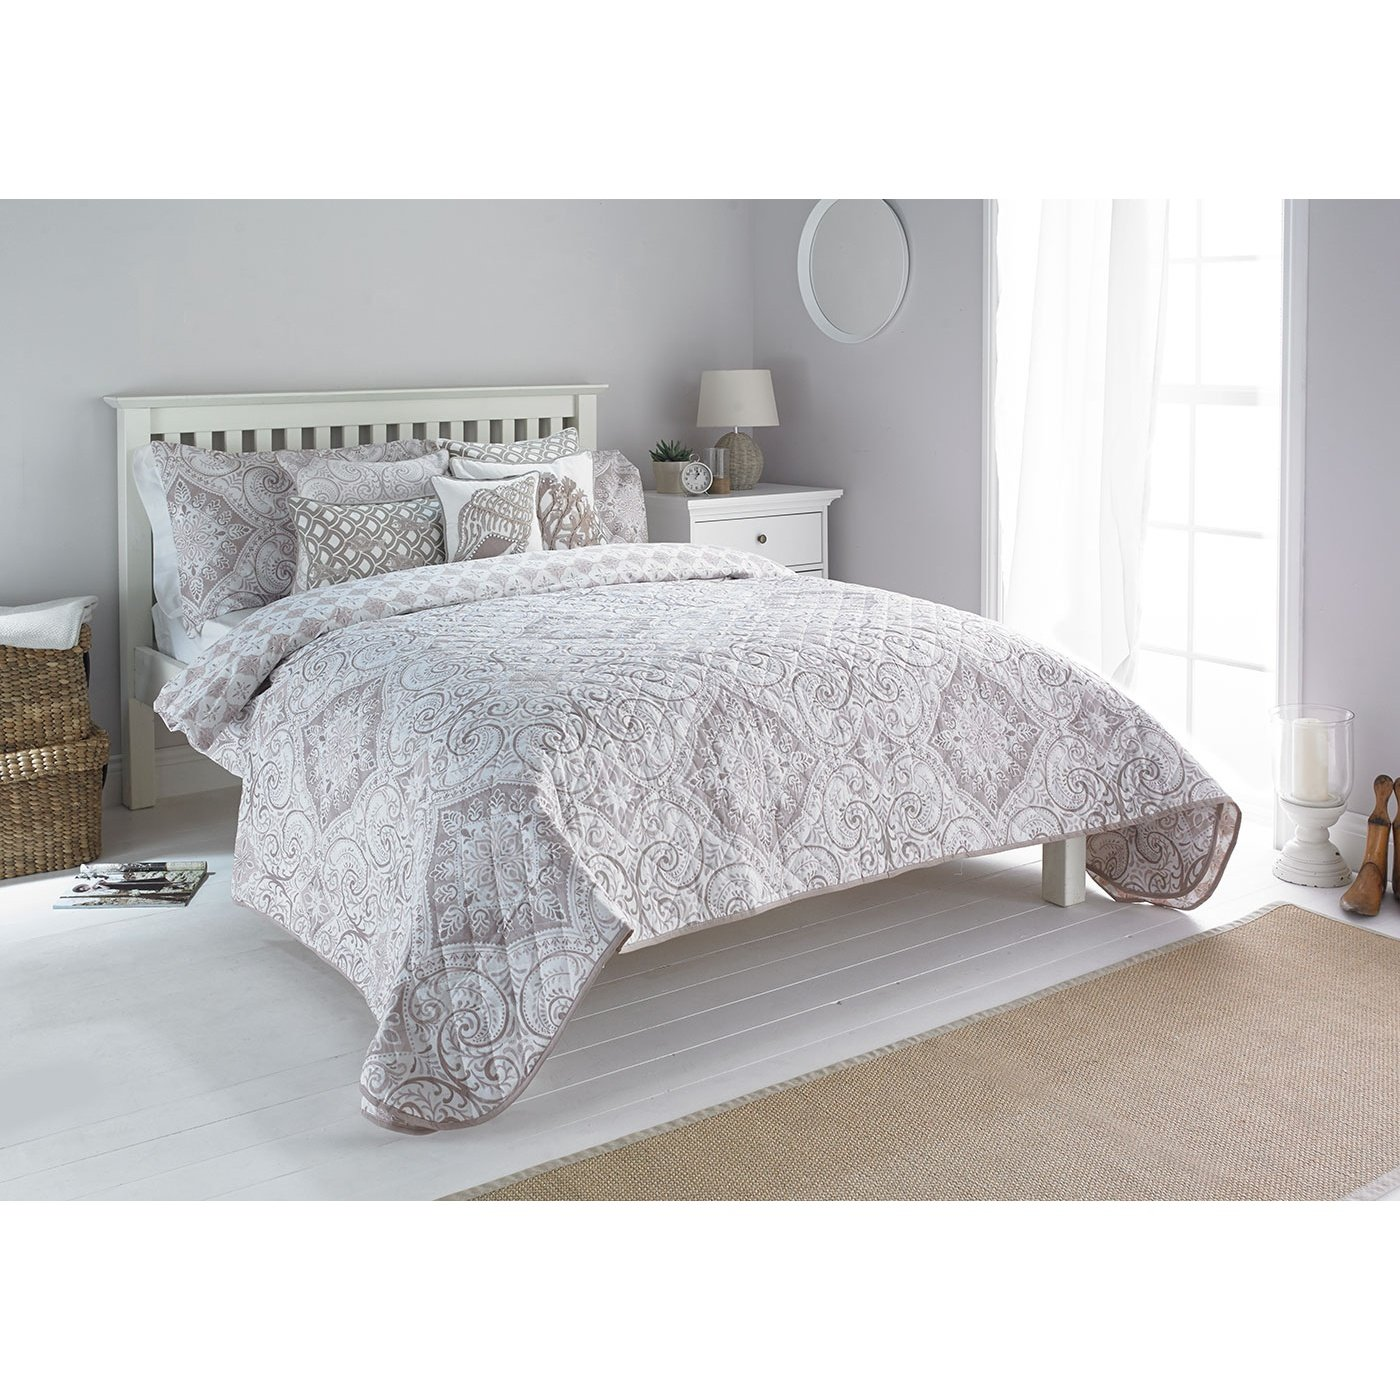 Riva Home Ionia Bedspread (94 x 102 inch) (Driftwood)